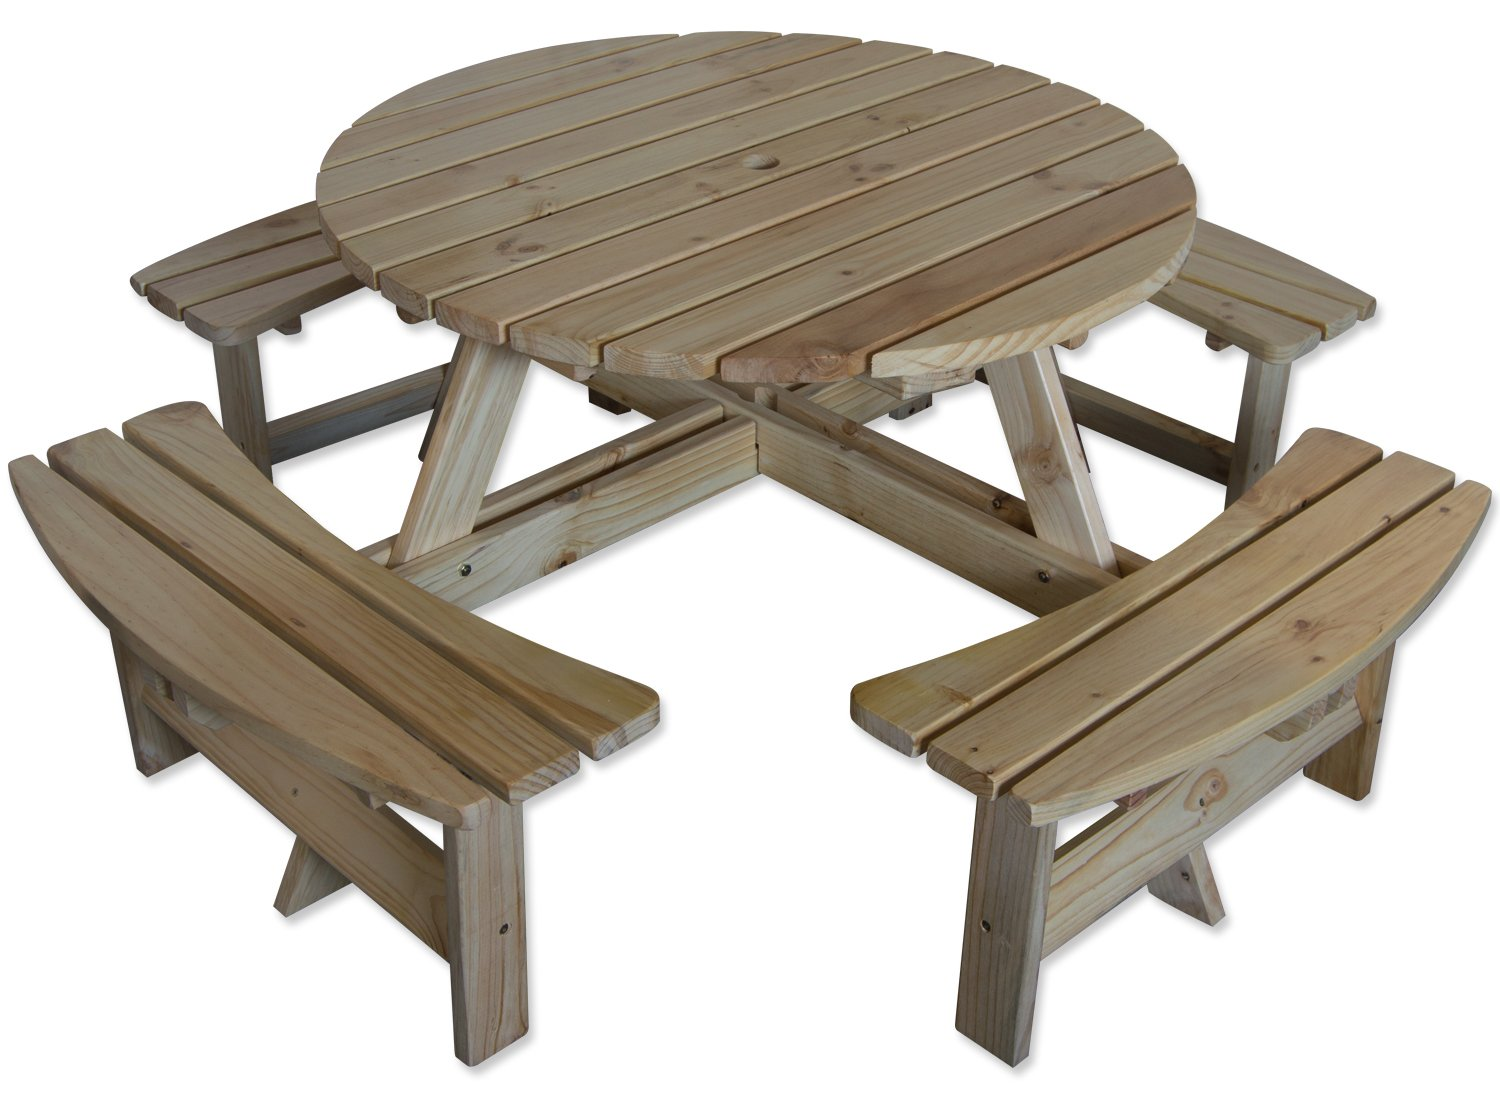 Maribelle 10 Seater Natural Pine Round Wooden Bench/Picnic Table - for  Garden, Pub, Patio